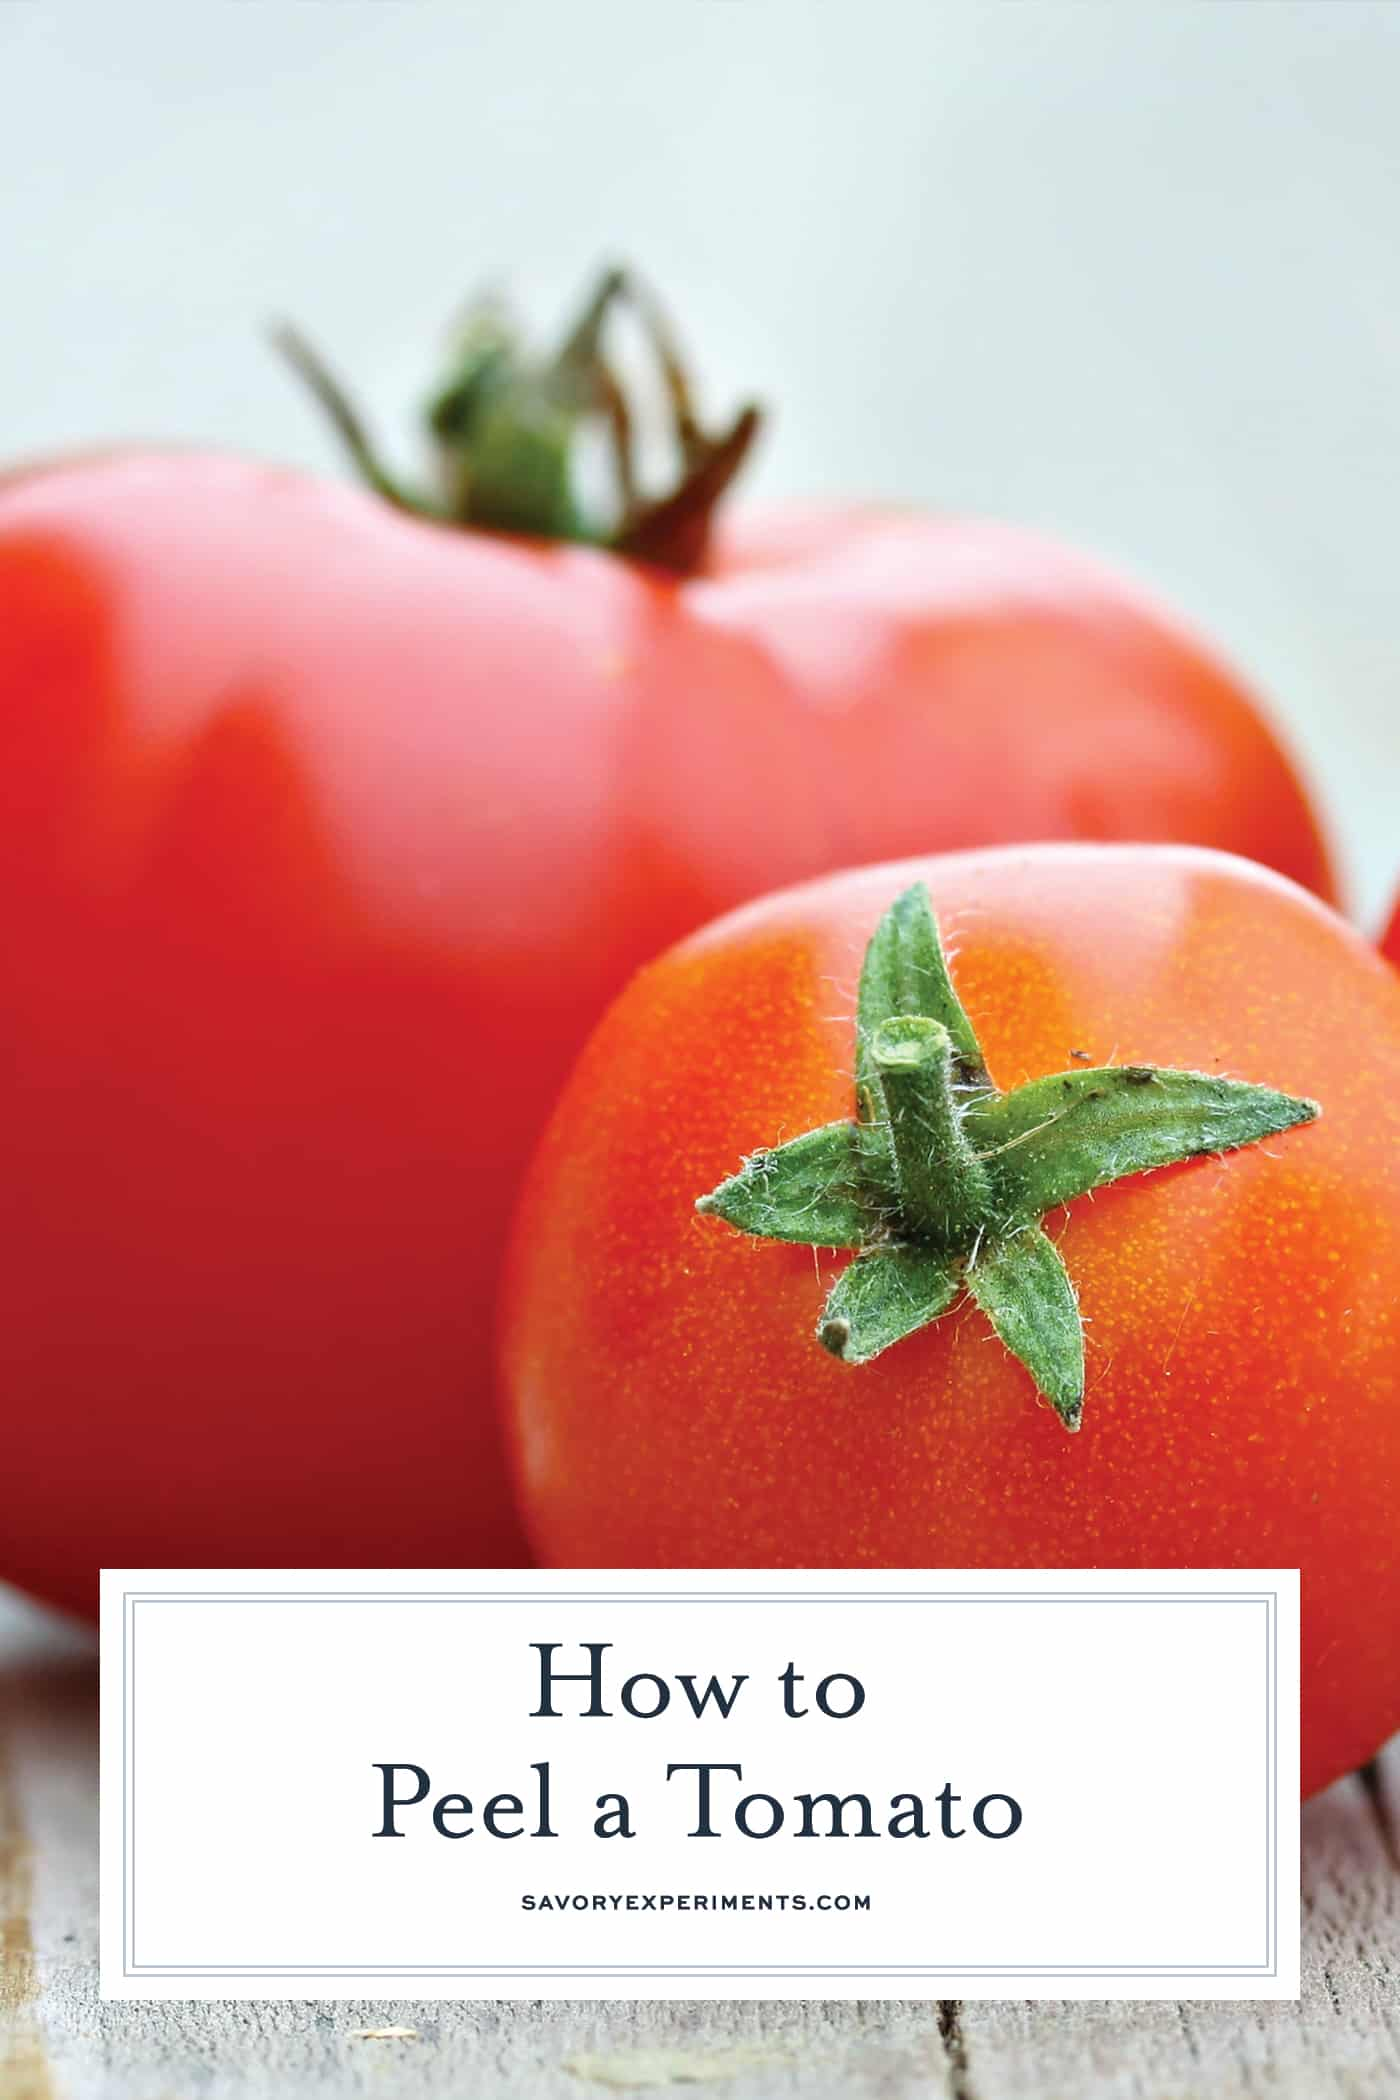 Learn how to peel a tomato in just a minute! Super easy without cooking the tomato. Perfect for sauces, salads and salsas! #howtopeelatomato #tomatoes www.savoryexperiments.com